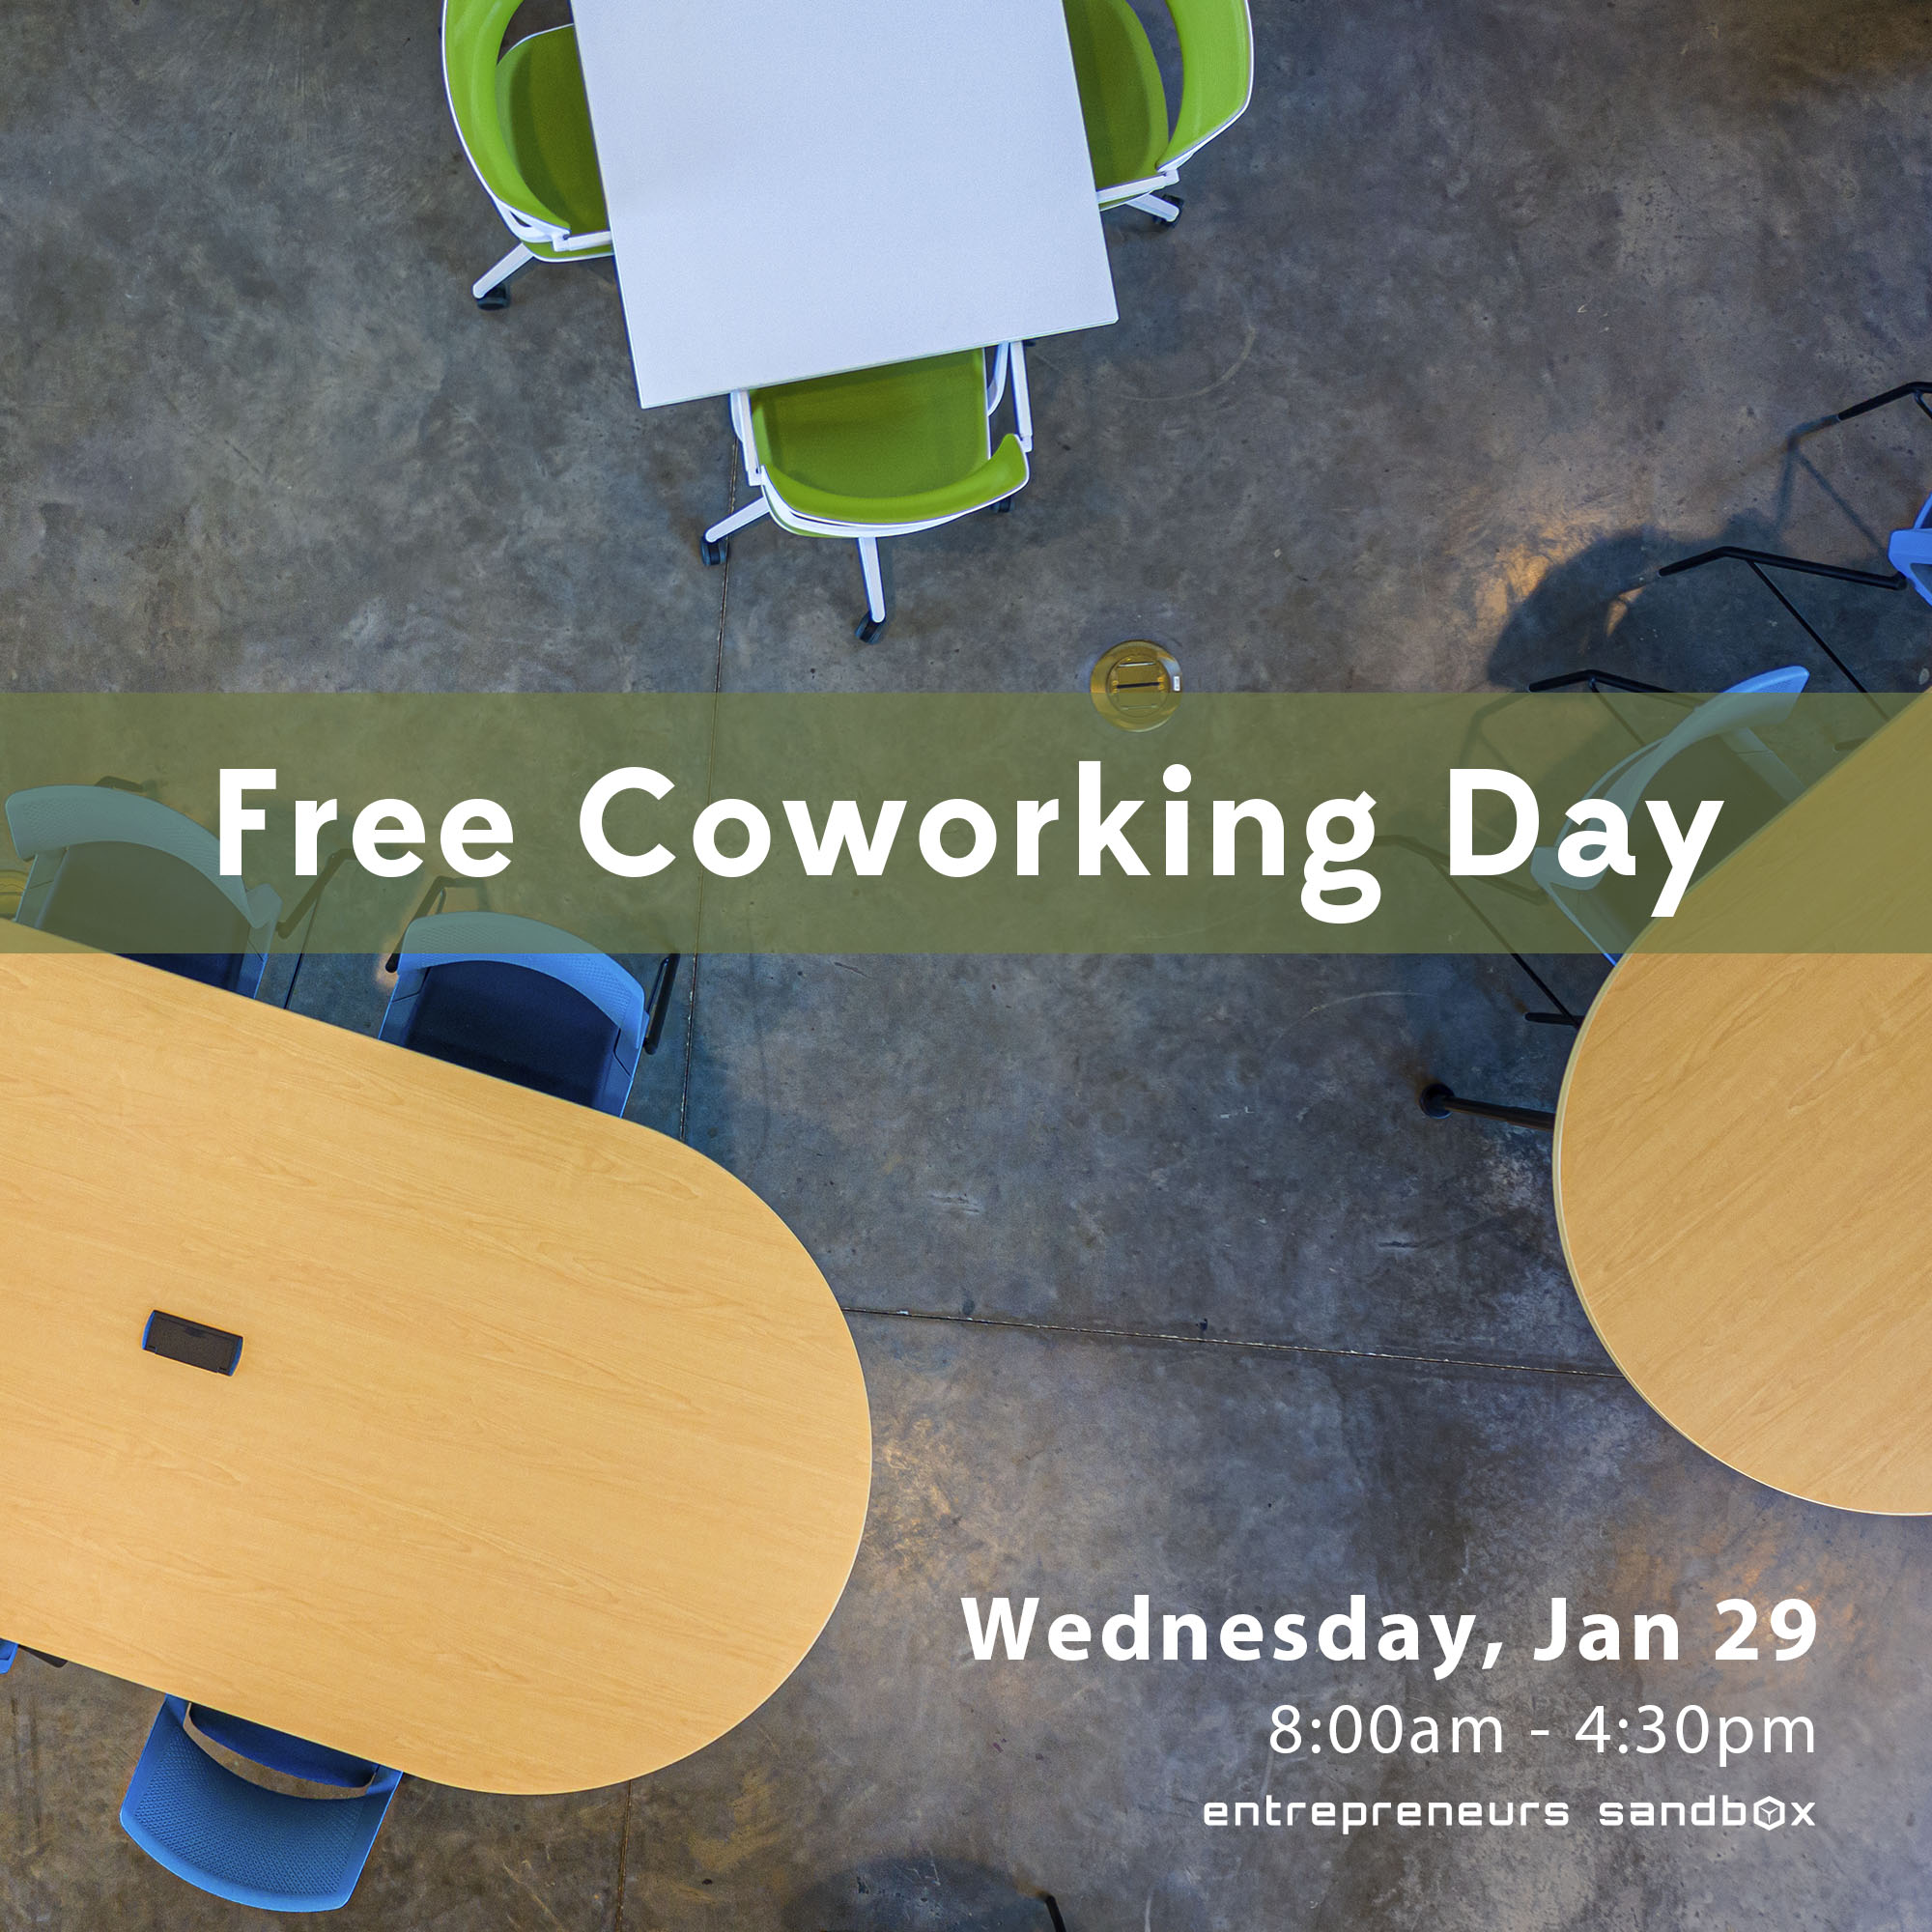 Free Coworking Day at the Entrepreneurs Sandbox on January 29! Work is always better with others.